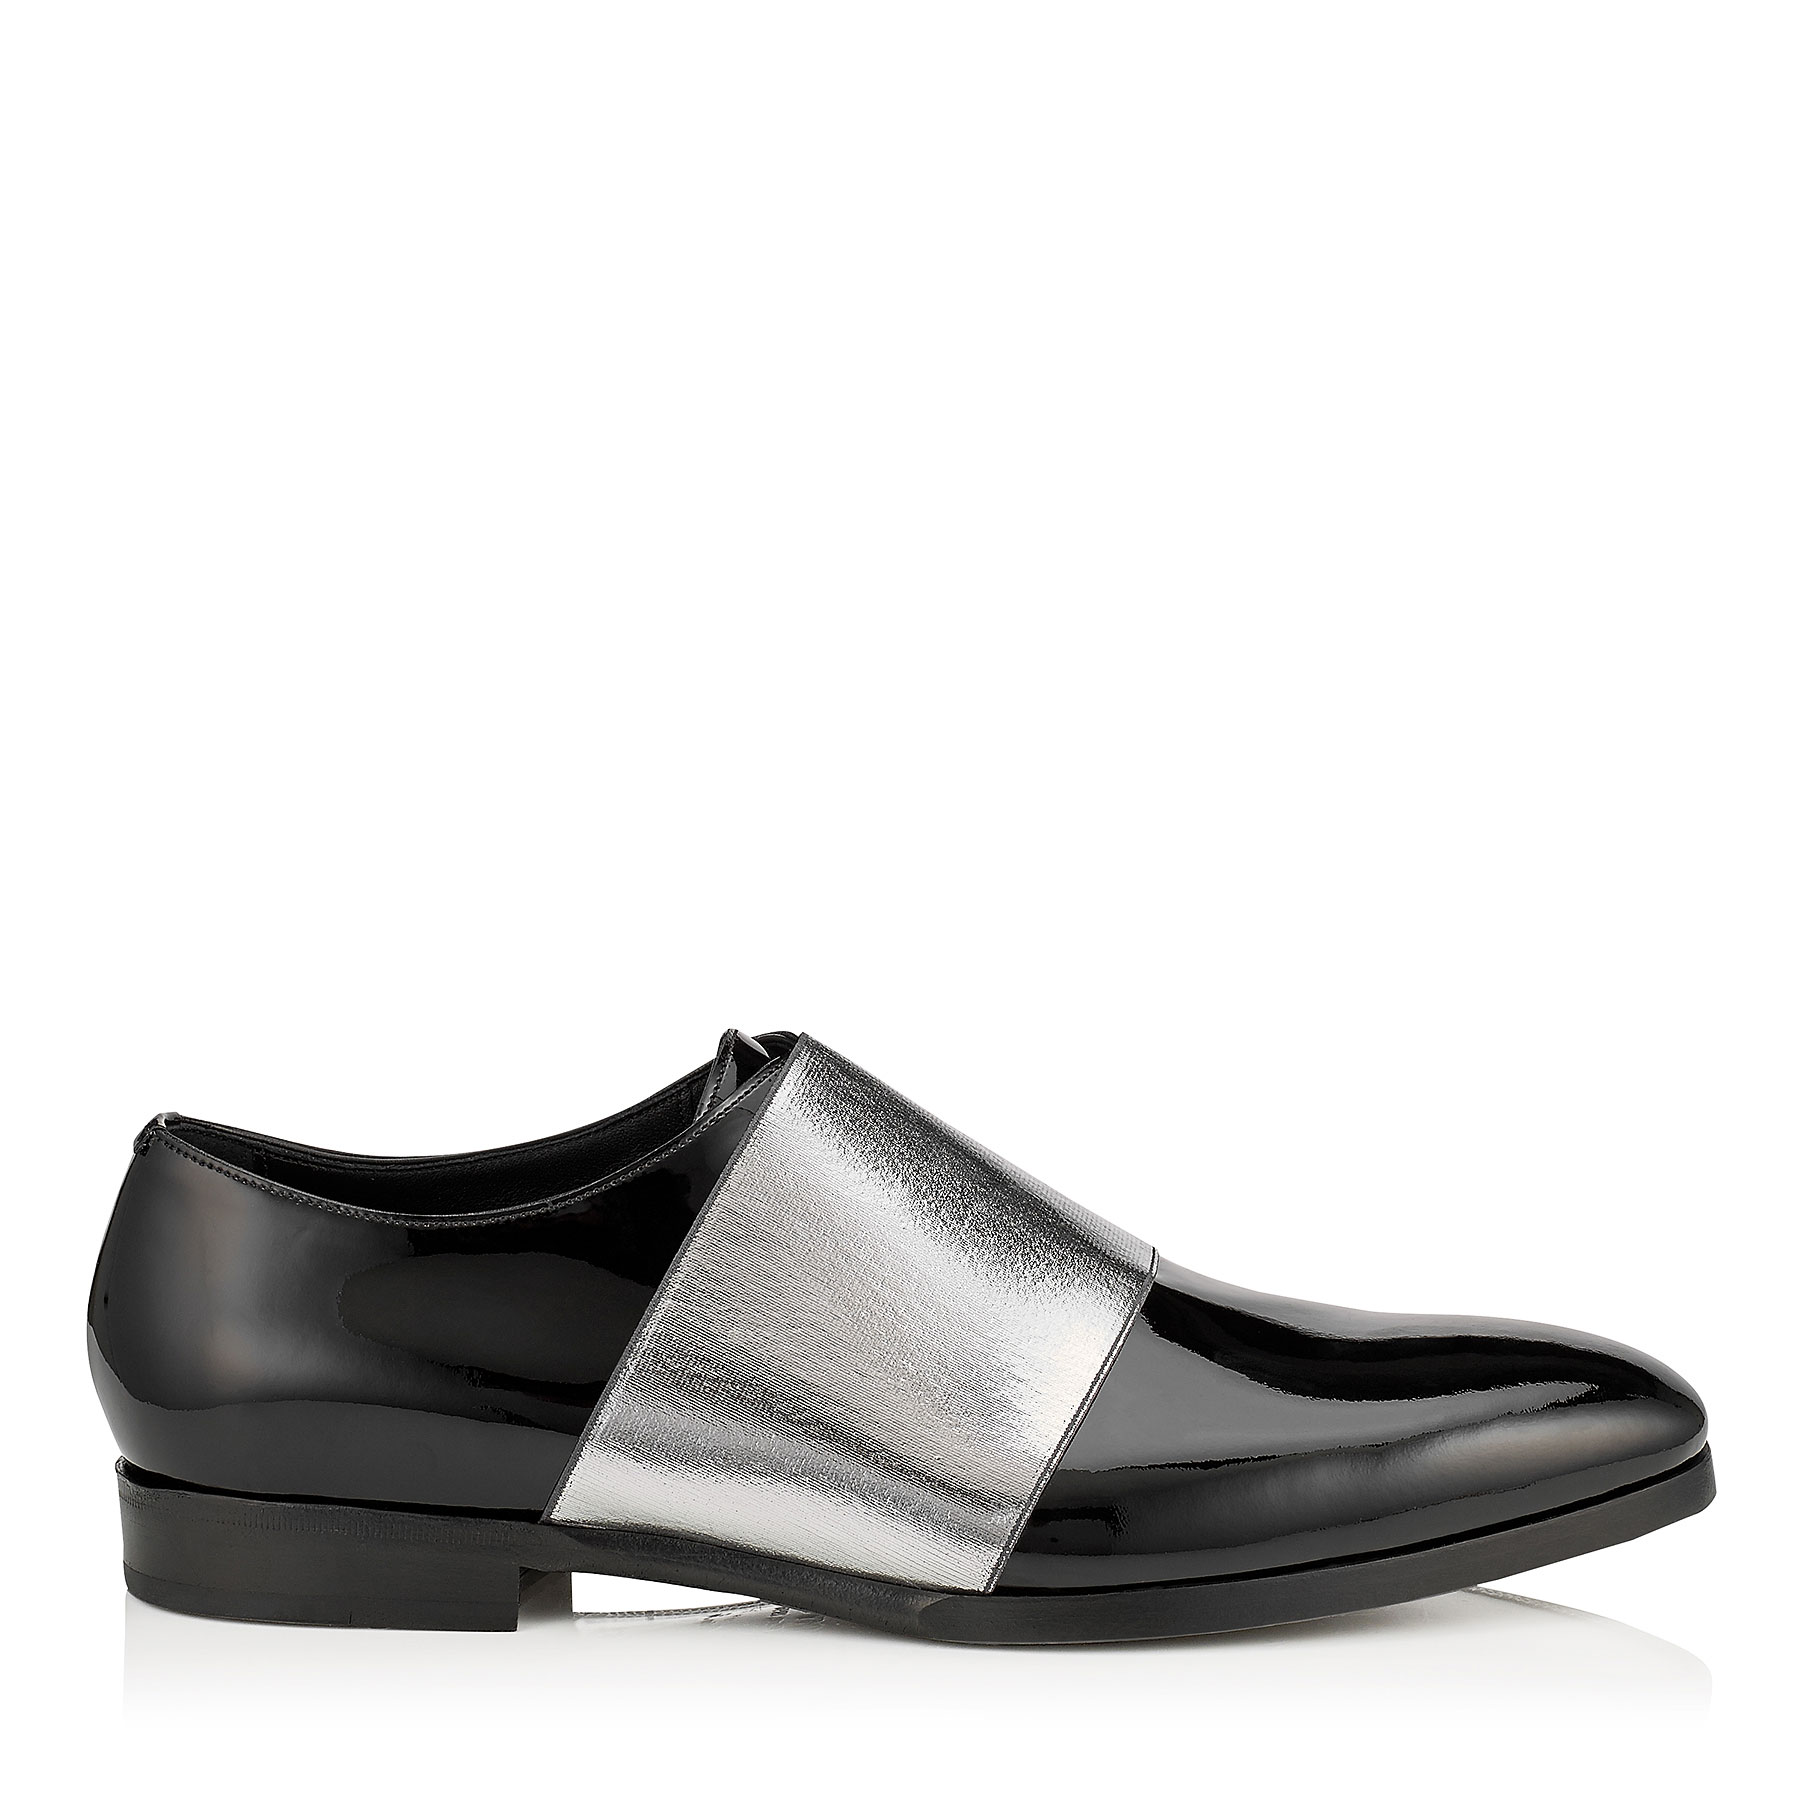 PETER Black Patent and Silver Metallic Elastic Formal Shoes